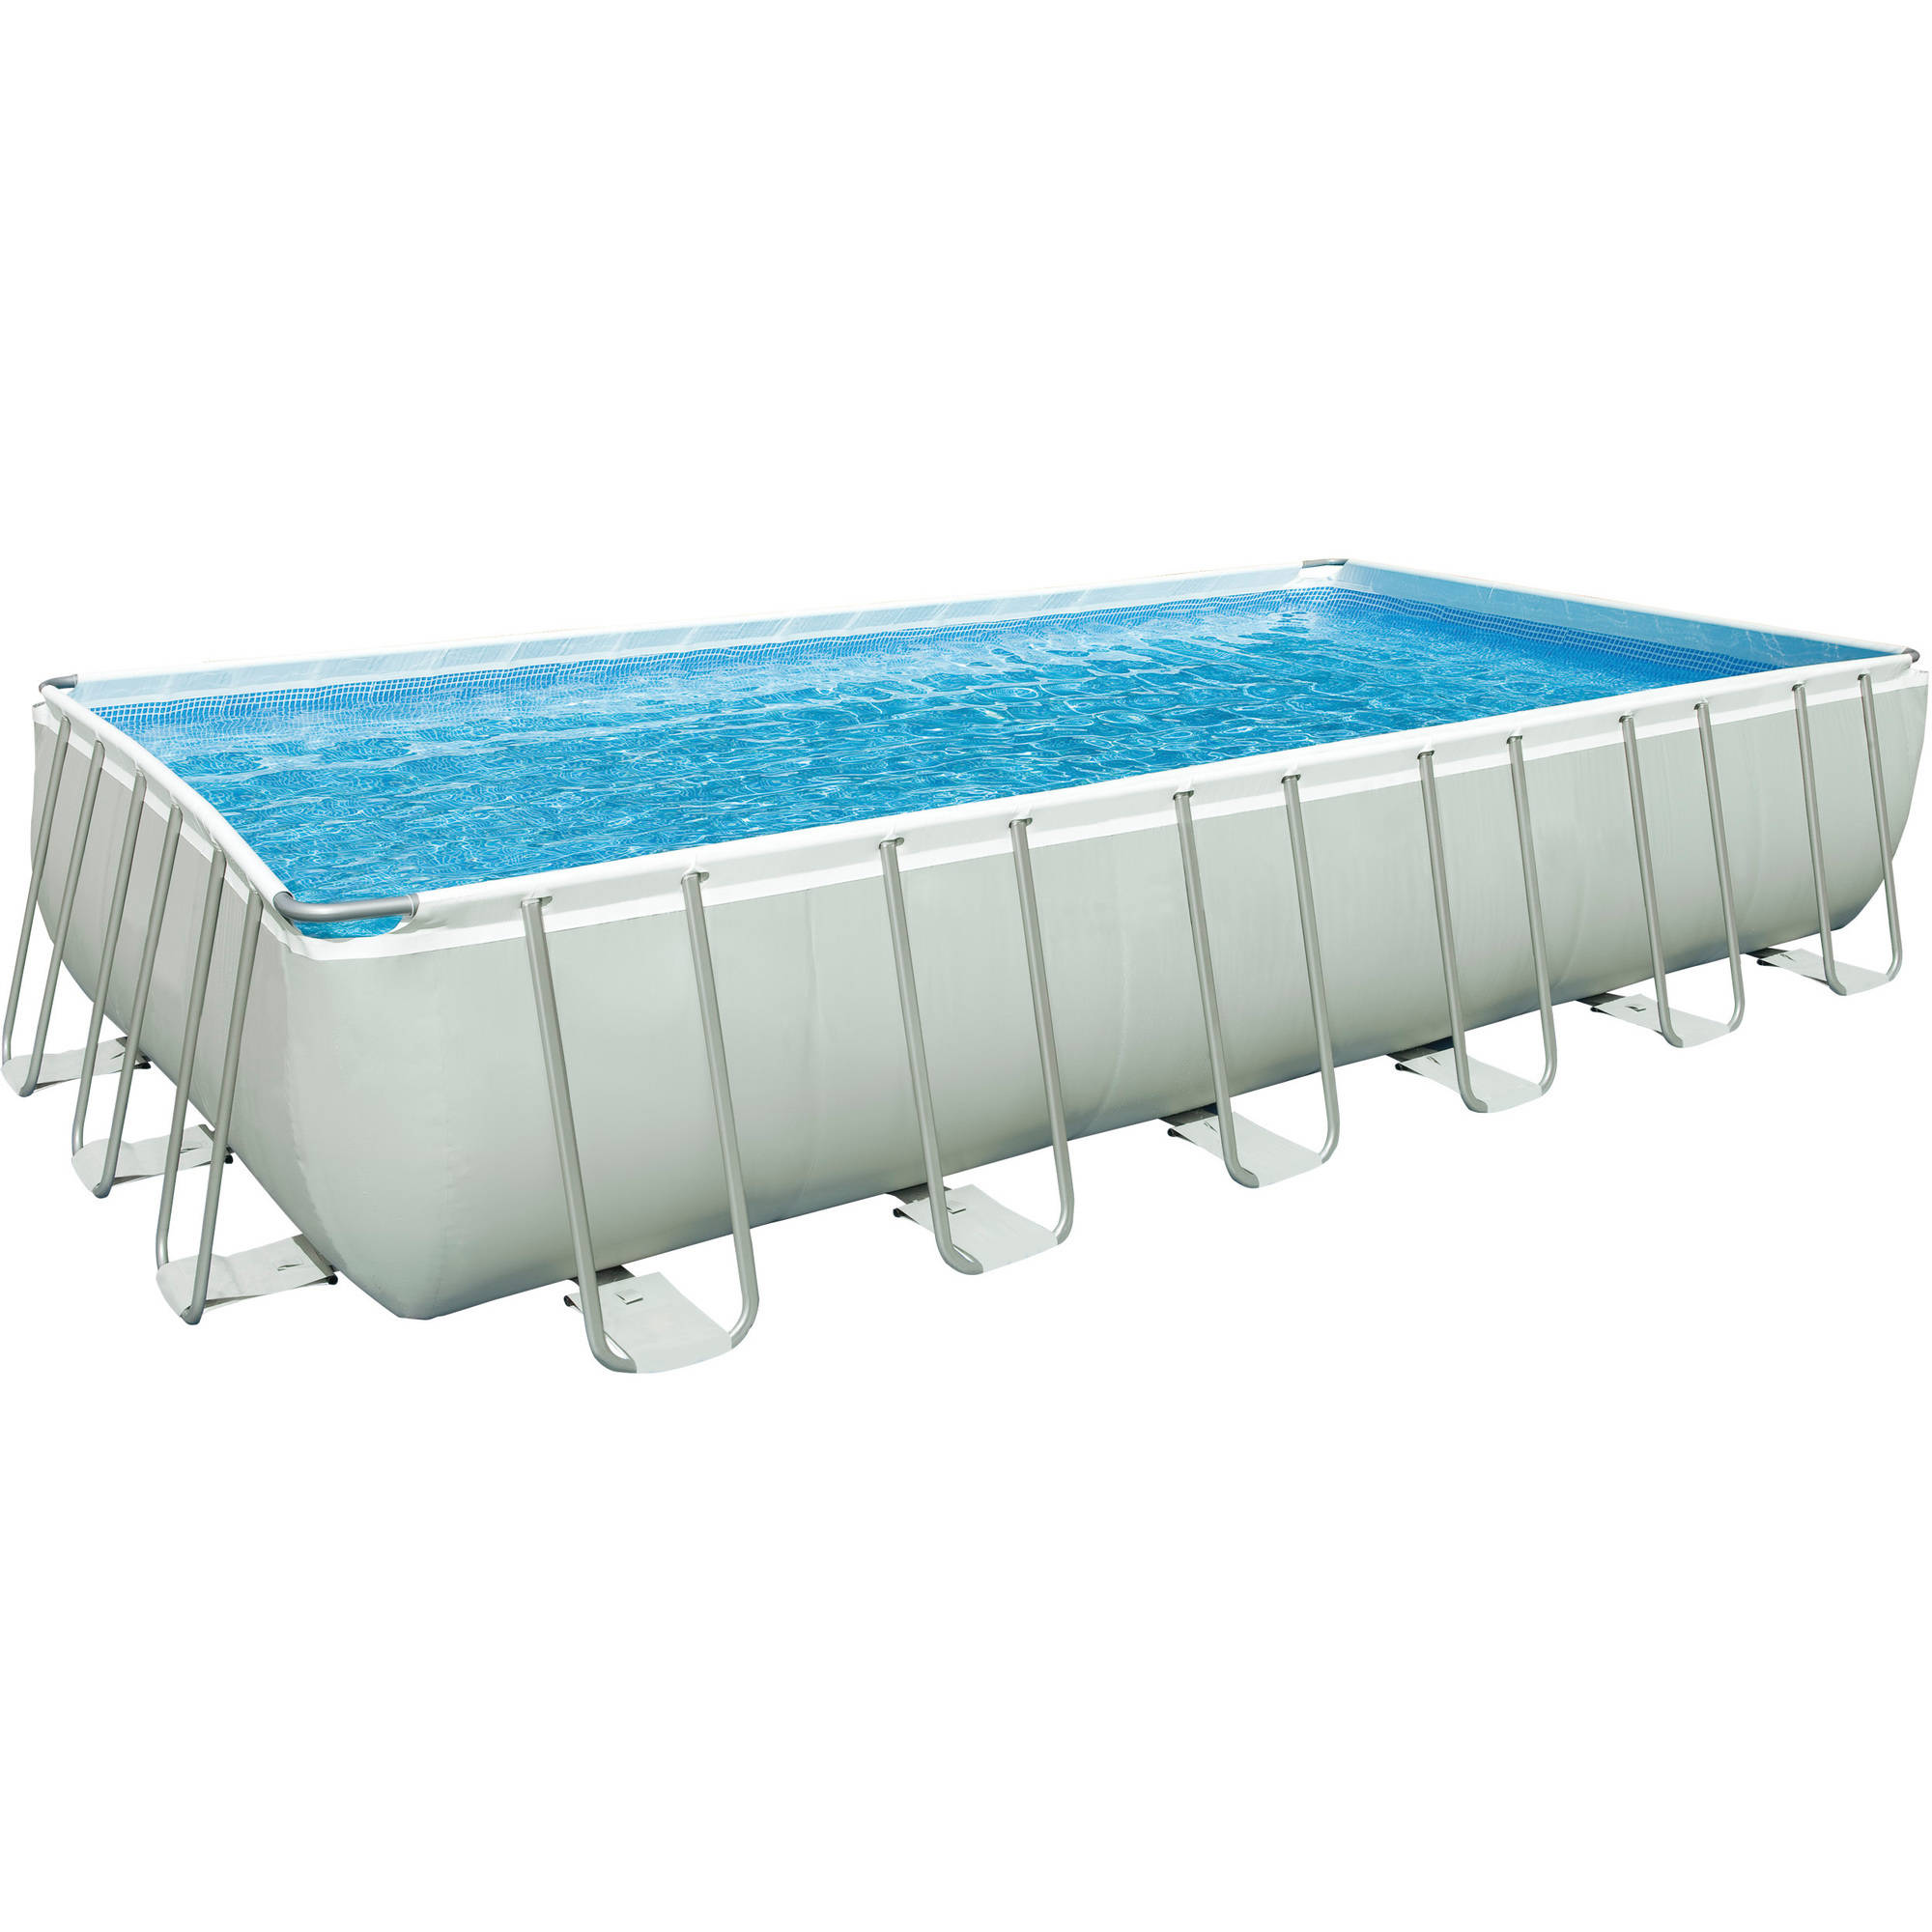 "Intex 24' x 12' x 52"" Ultra Frame Rectangular Above Ground Swimming Pool"